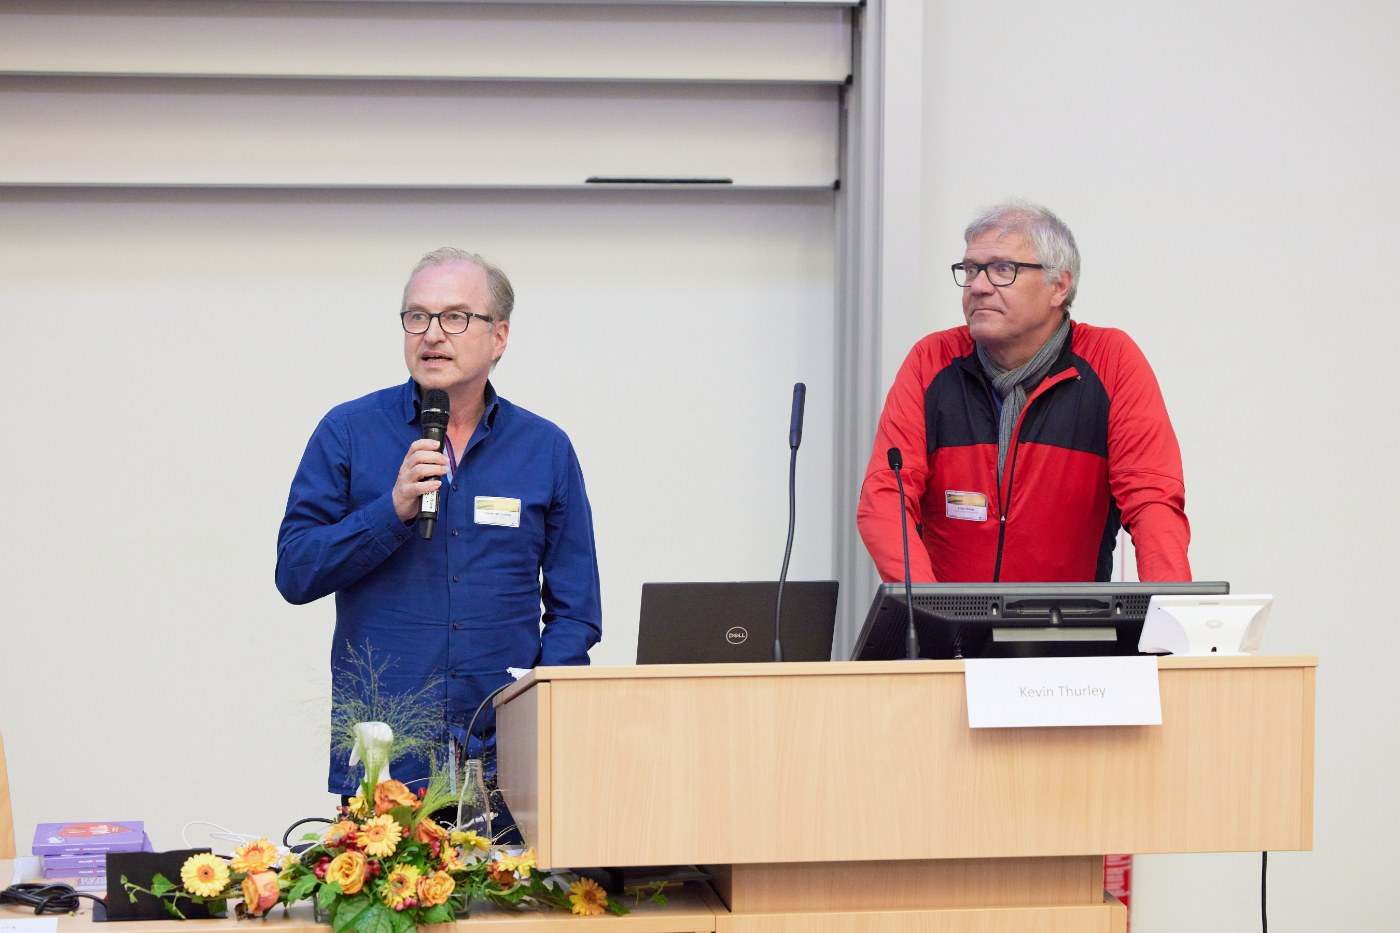 """Prof. Dr. Waldemar Kolanus (speaker of ImmunoSensation2 and TRA """"Life and Health"""") and Prof. Dr. Anton Bovier (speaker TRA """"Modelling"""") talked about connecting the disciplines."""